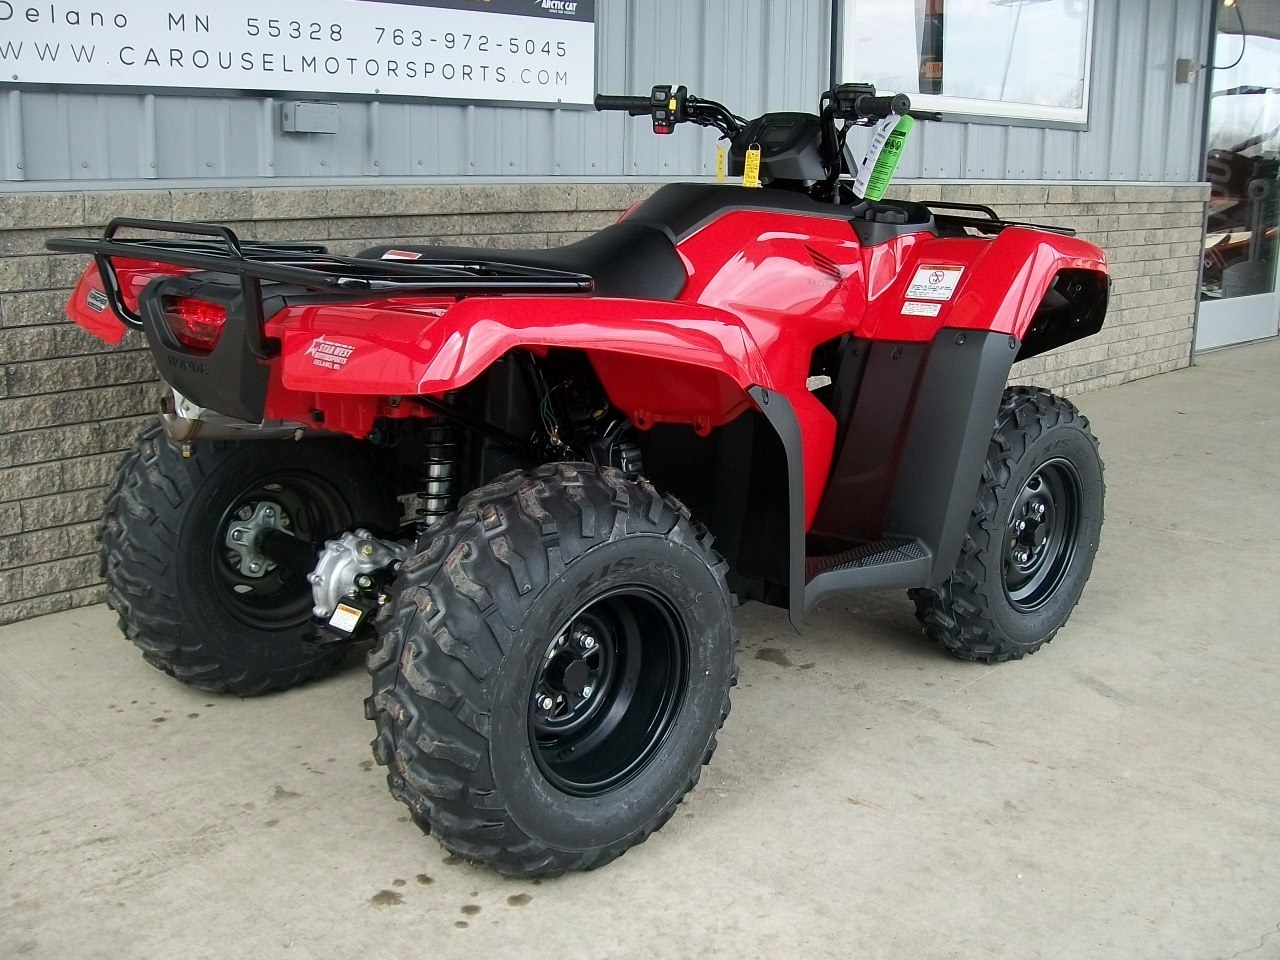 2016 Honda FourTrax Rancher ES in Delano, Minnesota